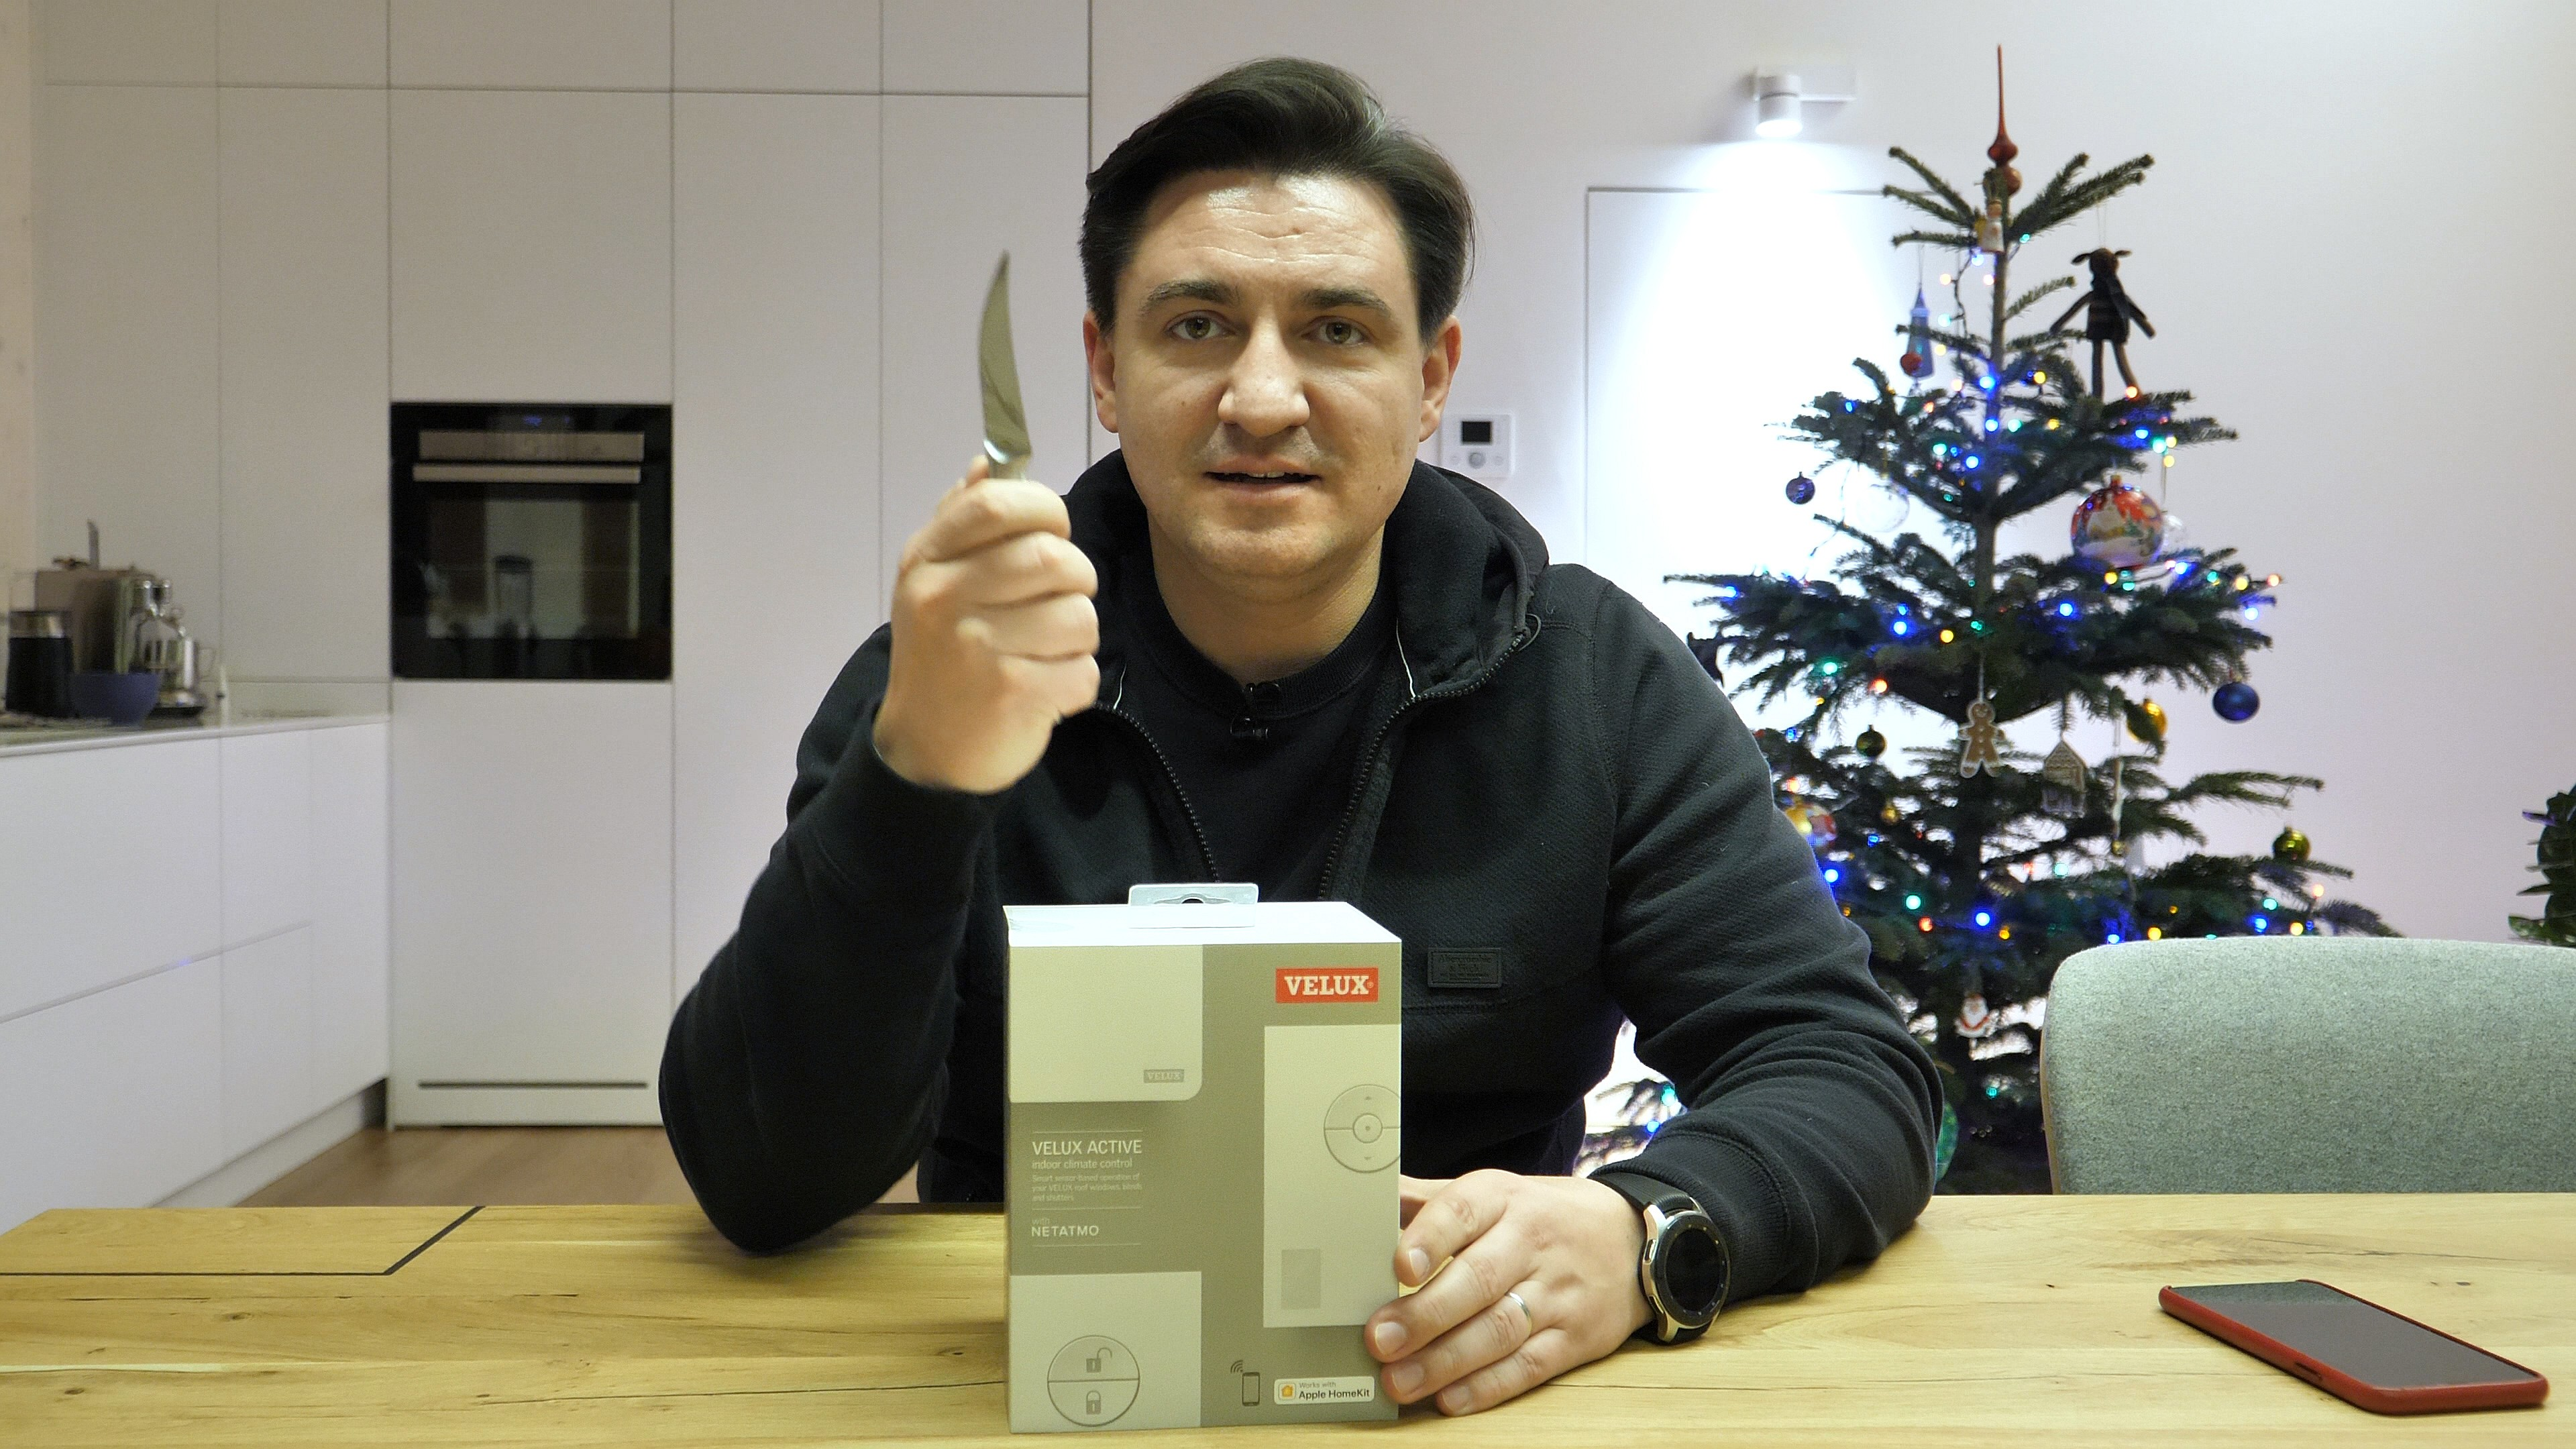 https://buhnici.ro/iphone-xs-giveaway-unboxing-review/image00002/